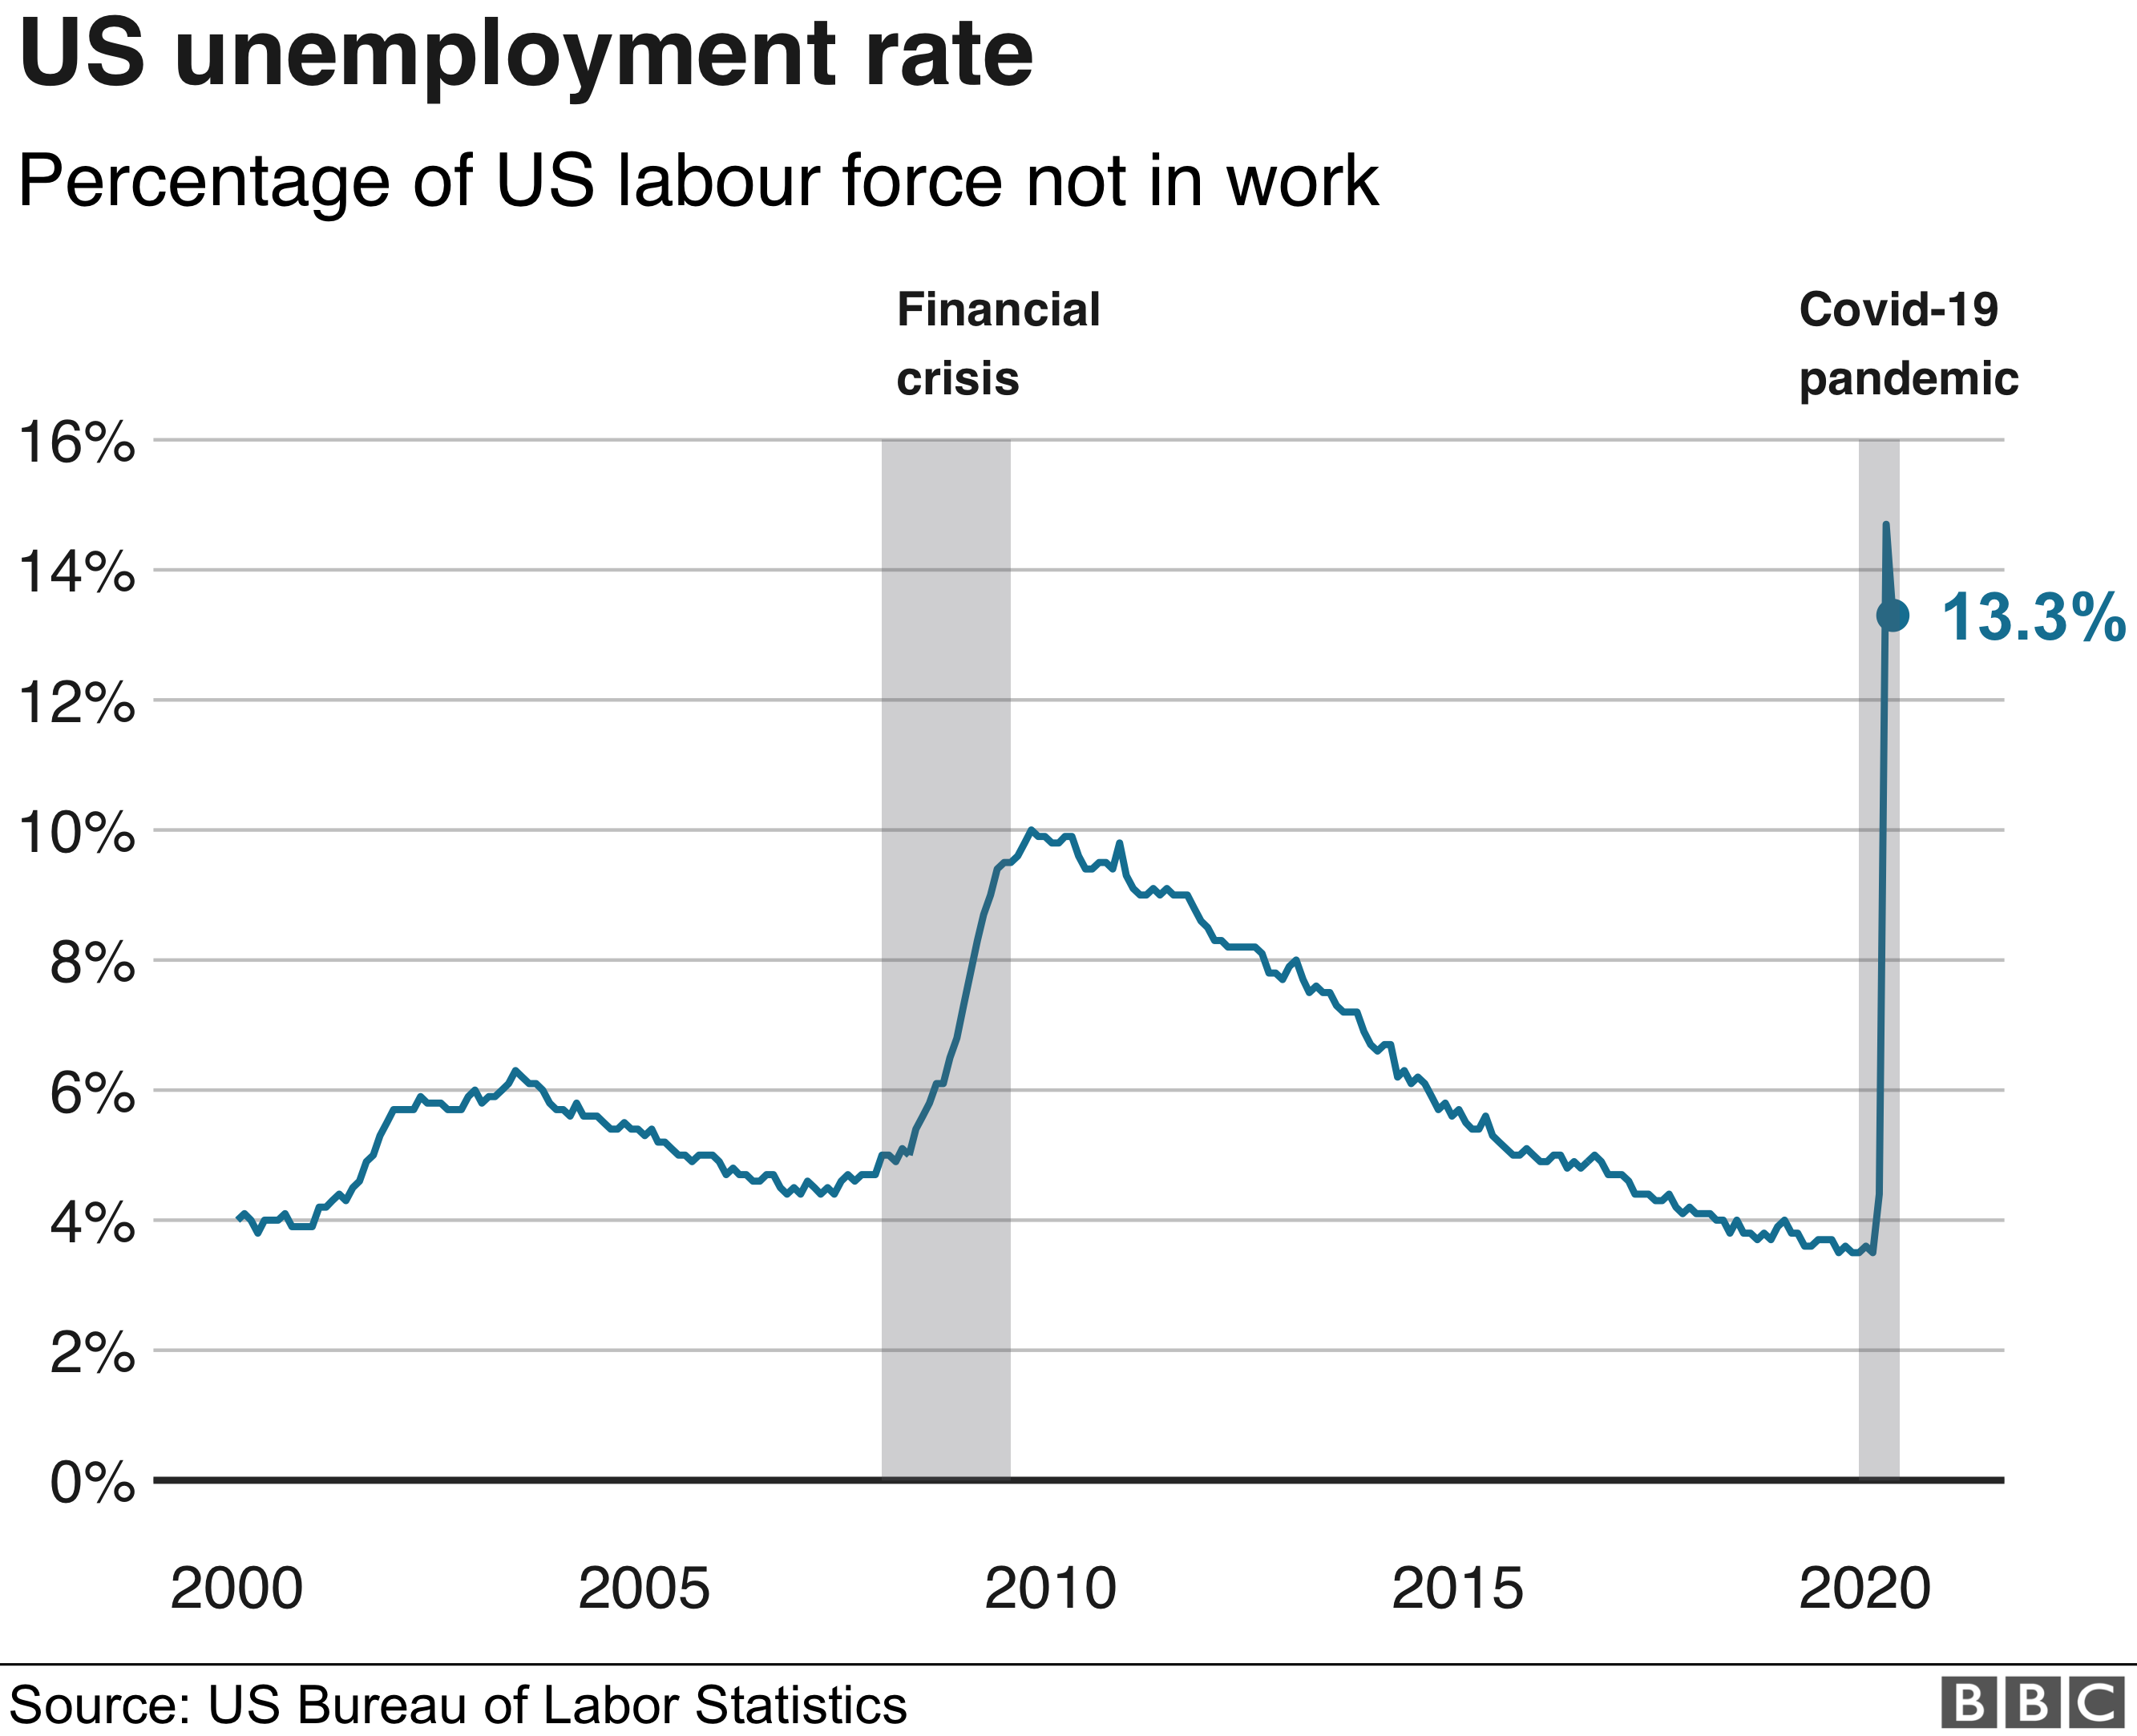 Chart showing US unemployment rate